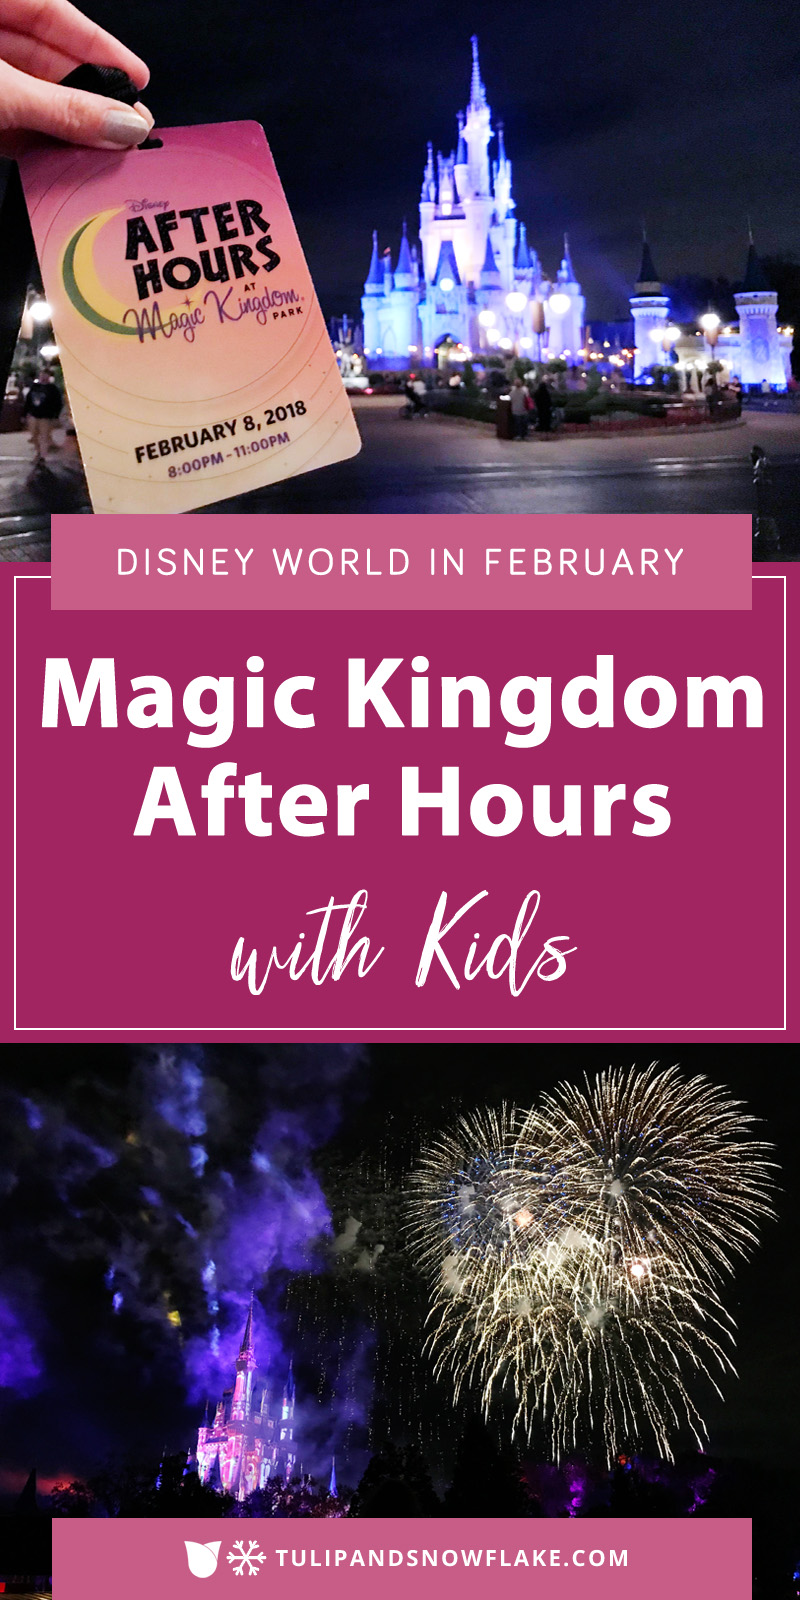 Magic Kingdom After Hours with Kids